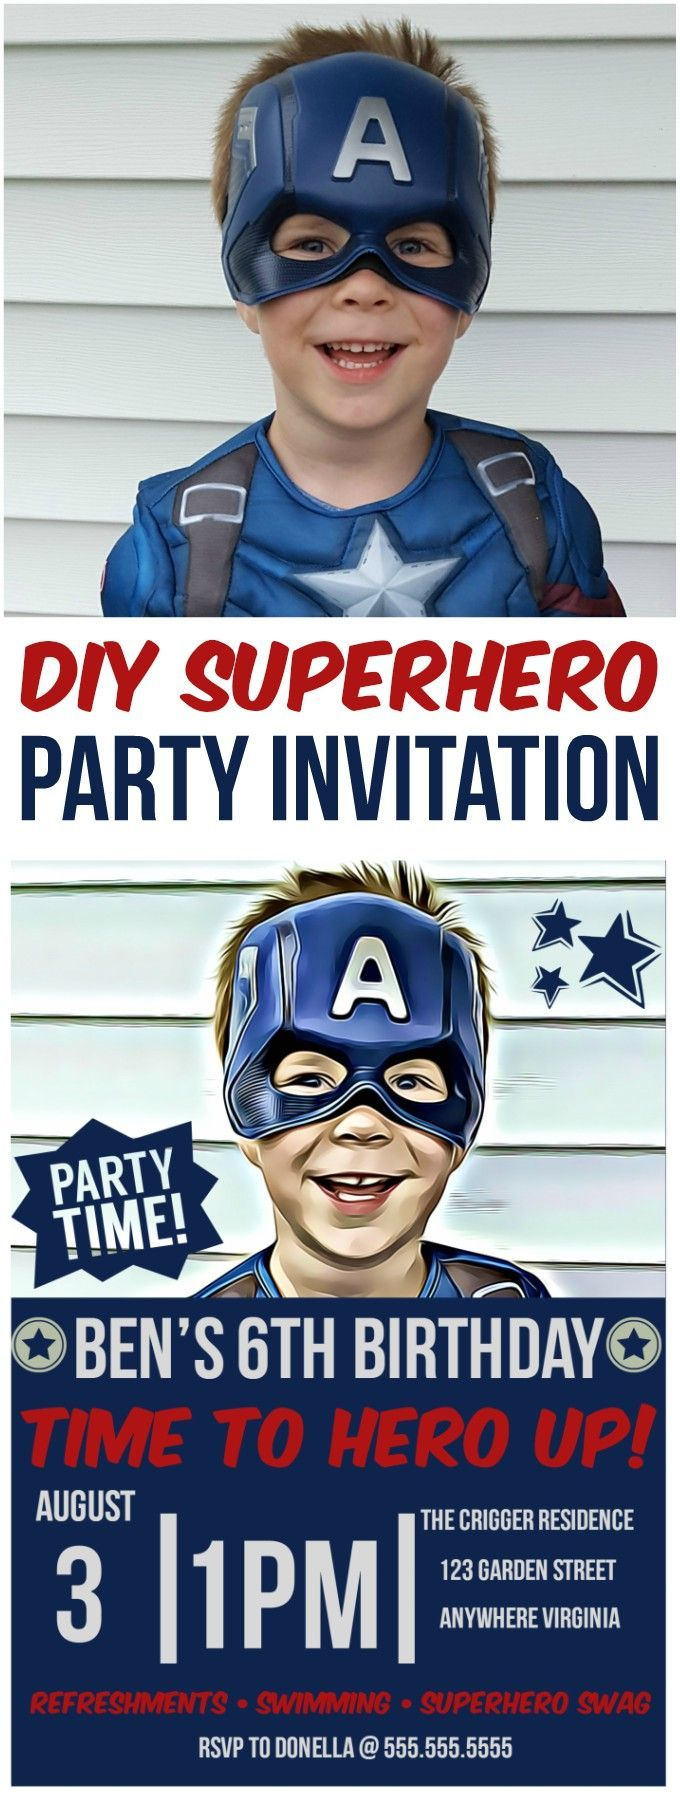 Make Your Own Diy Superhero Party Invitations Using BeFunkys Cartoonizer Digital Art Effects And Invitation Templates Sponsored